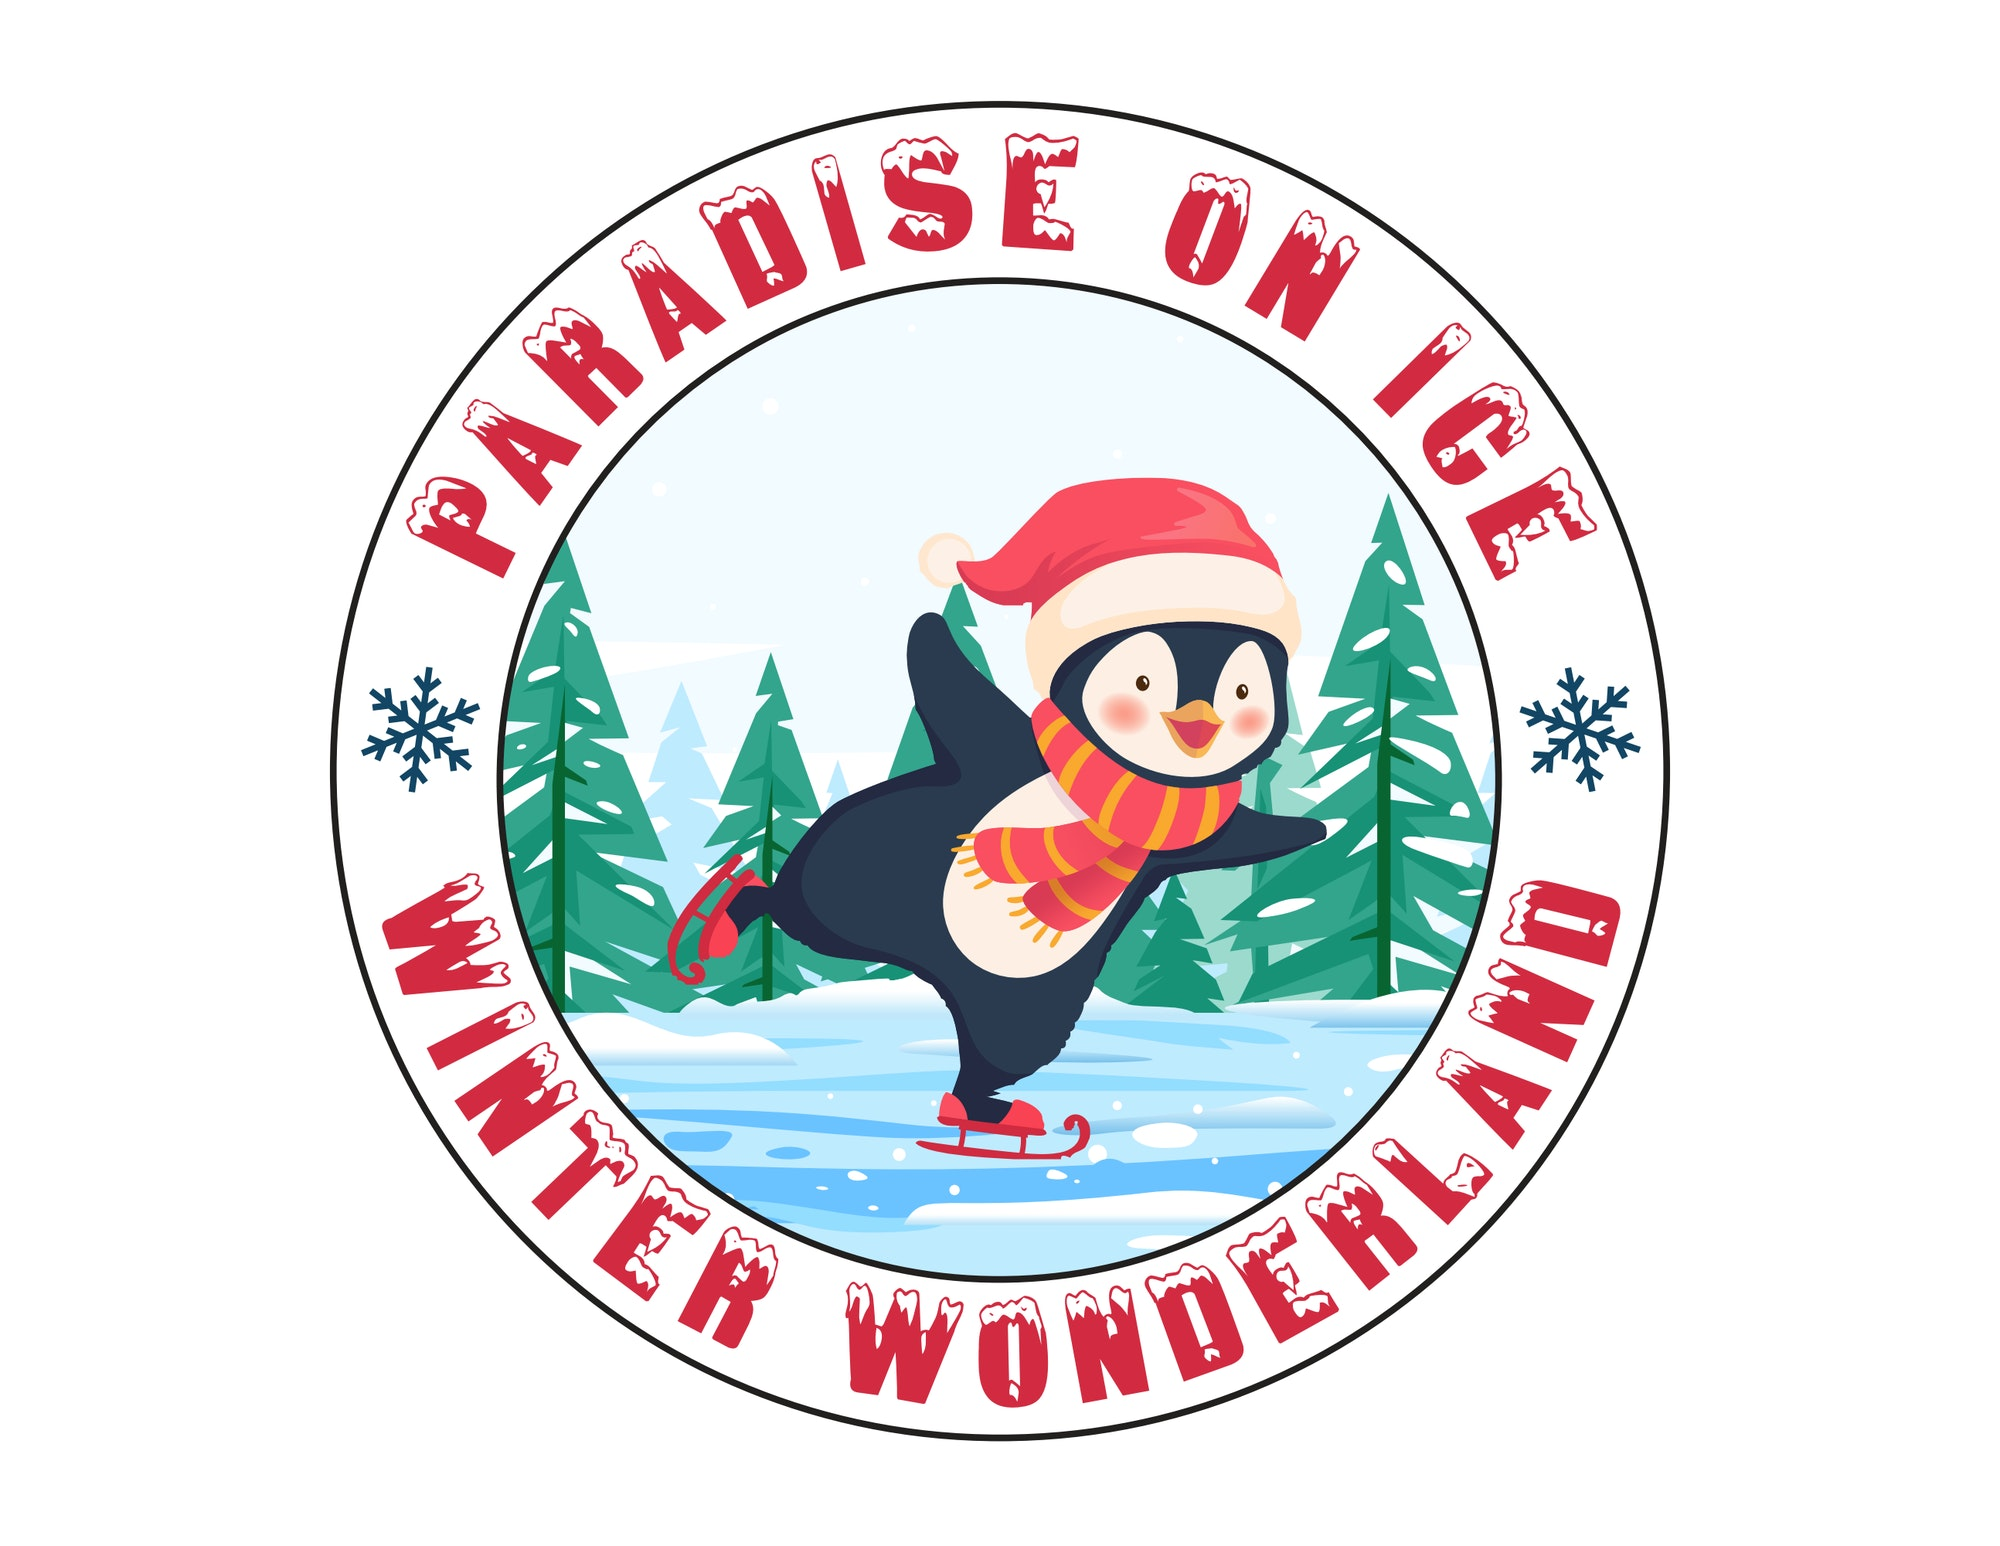 Picture of Penguin ice skating on a pond with tall pines in the background